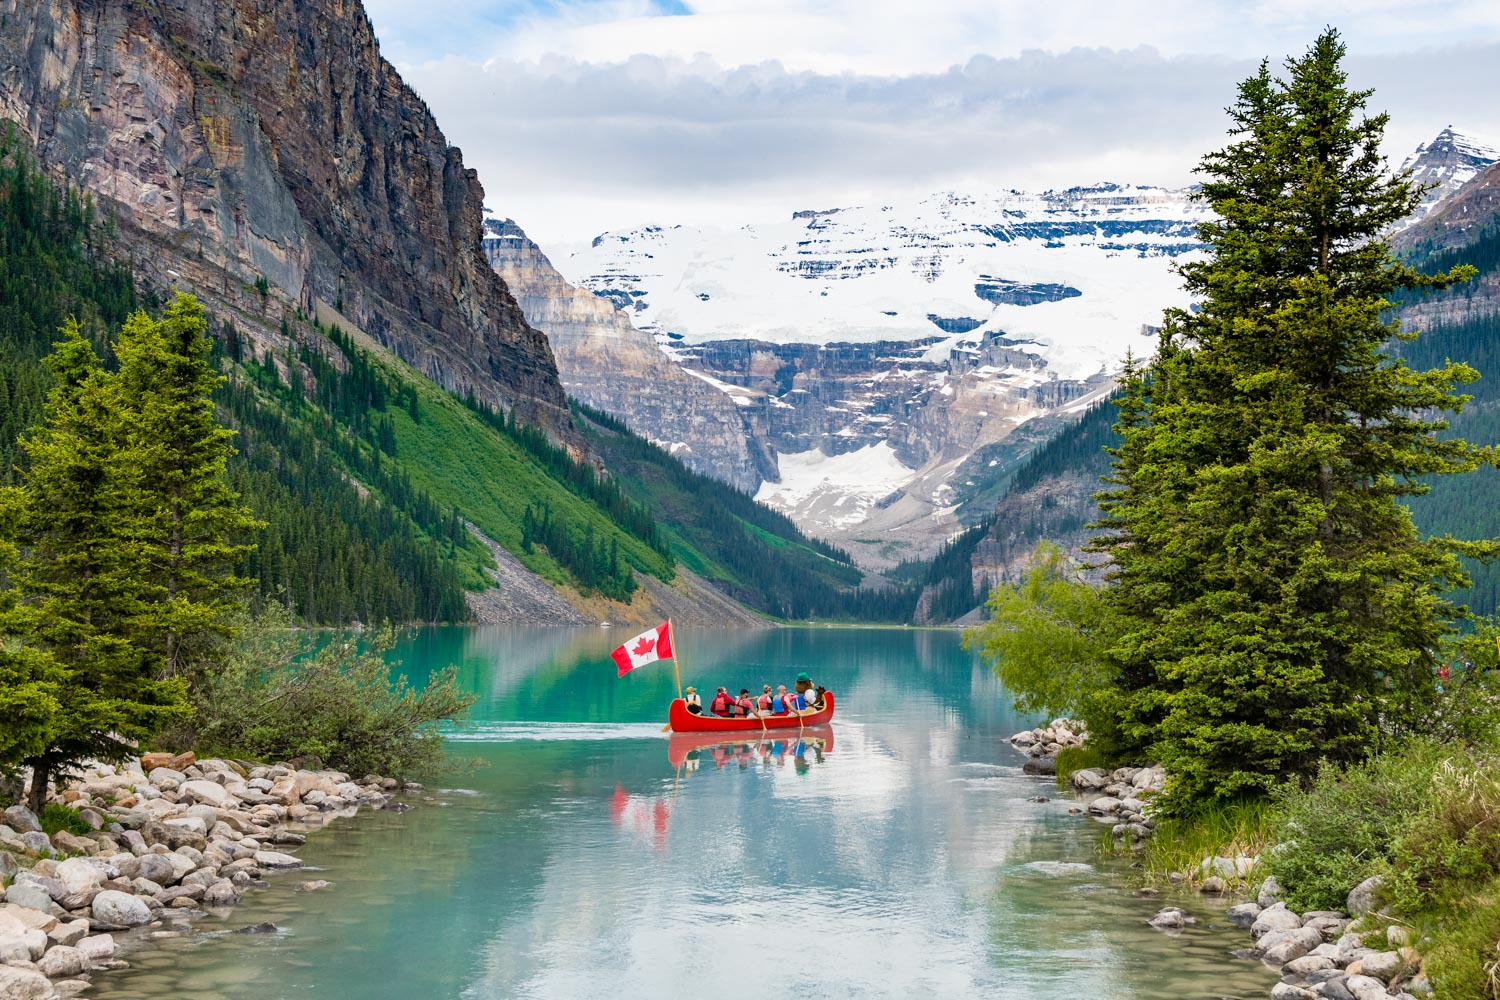 Canada day. A very Canadian photo.